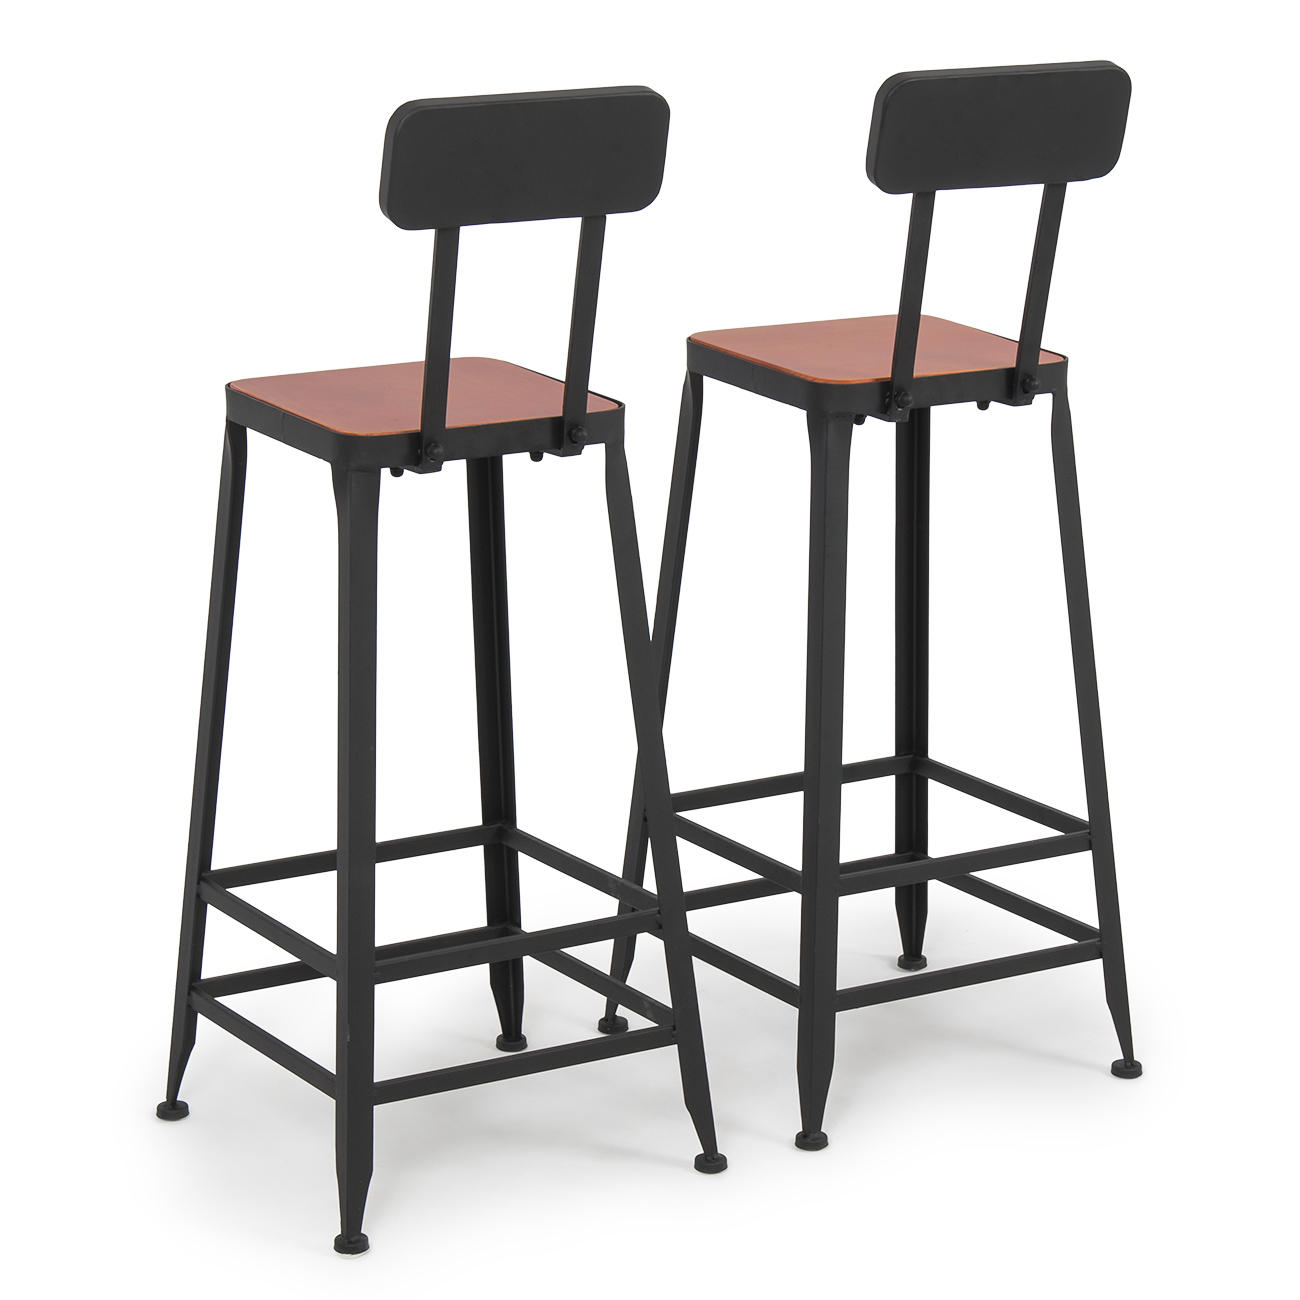 Industrial Bar Stools Barstools Wood Counter Top Height